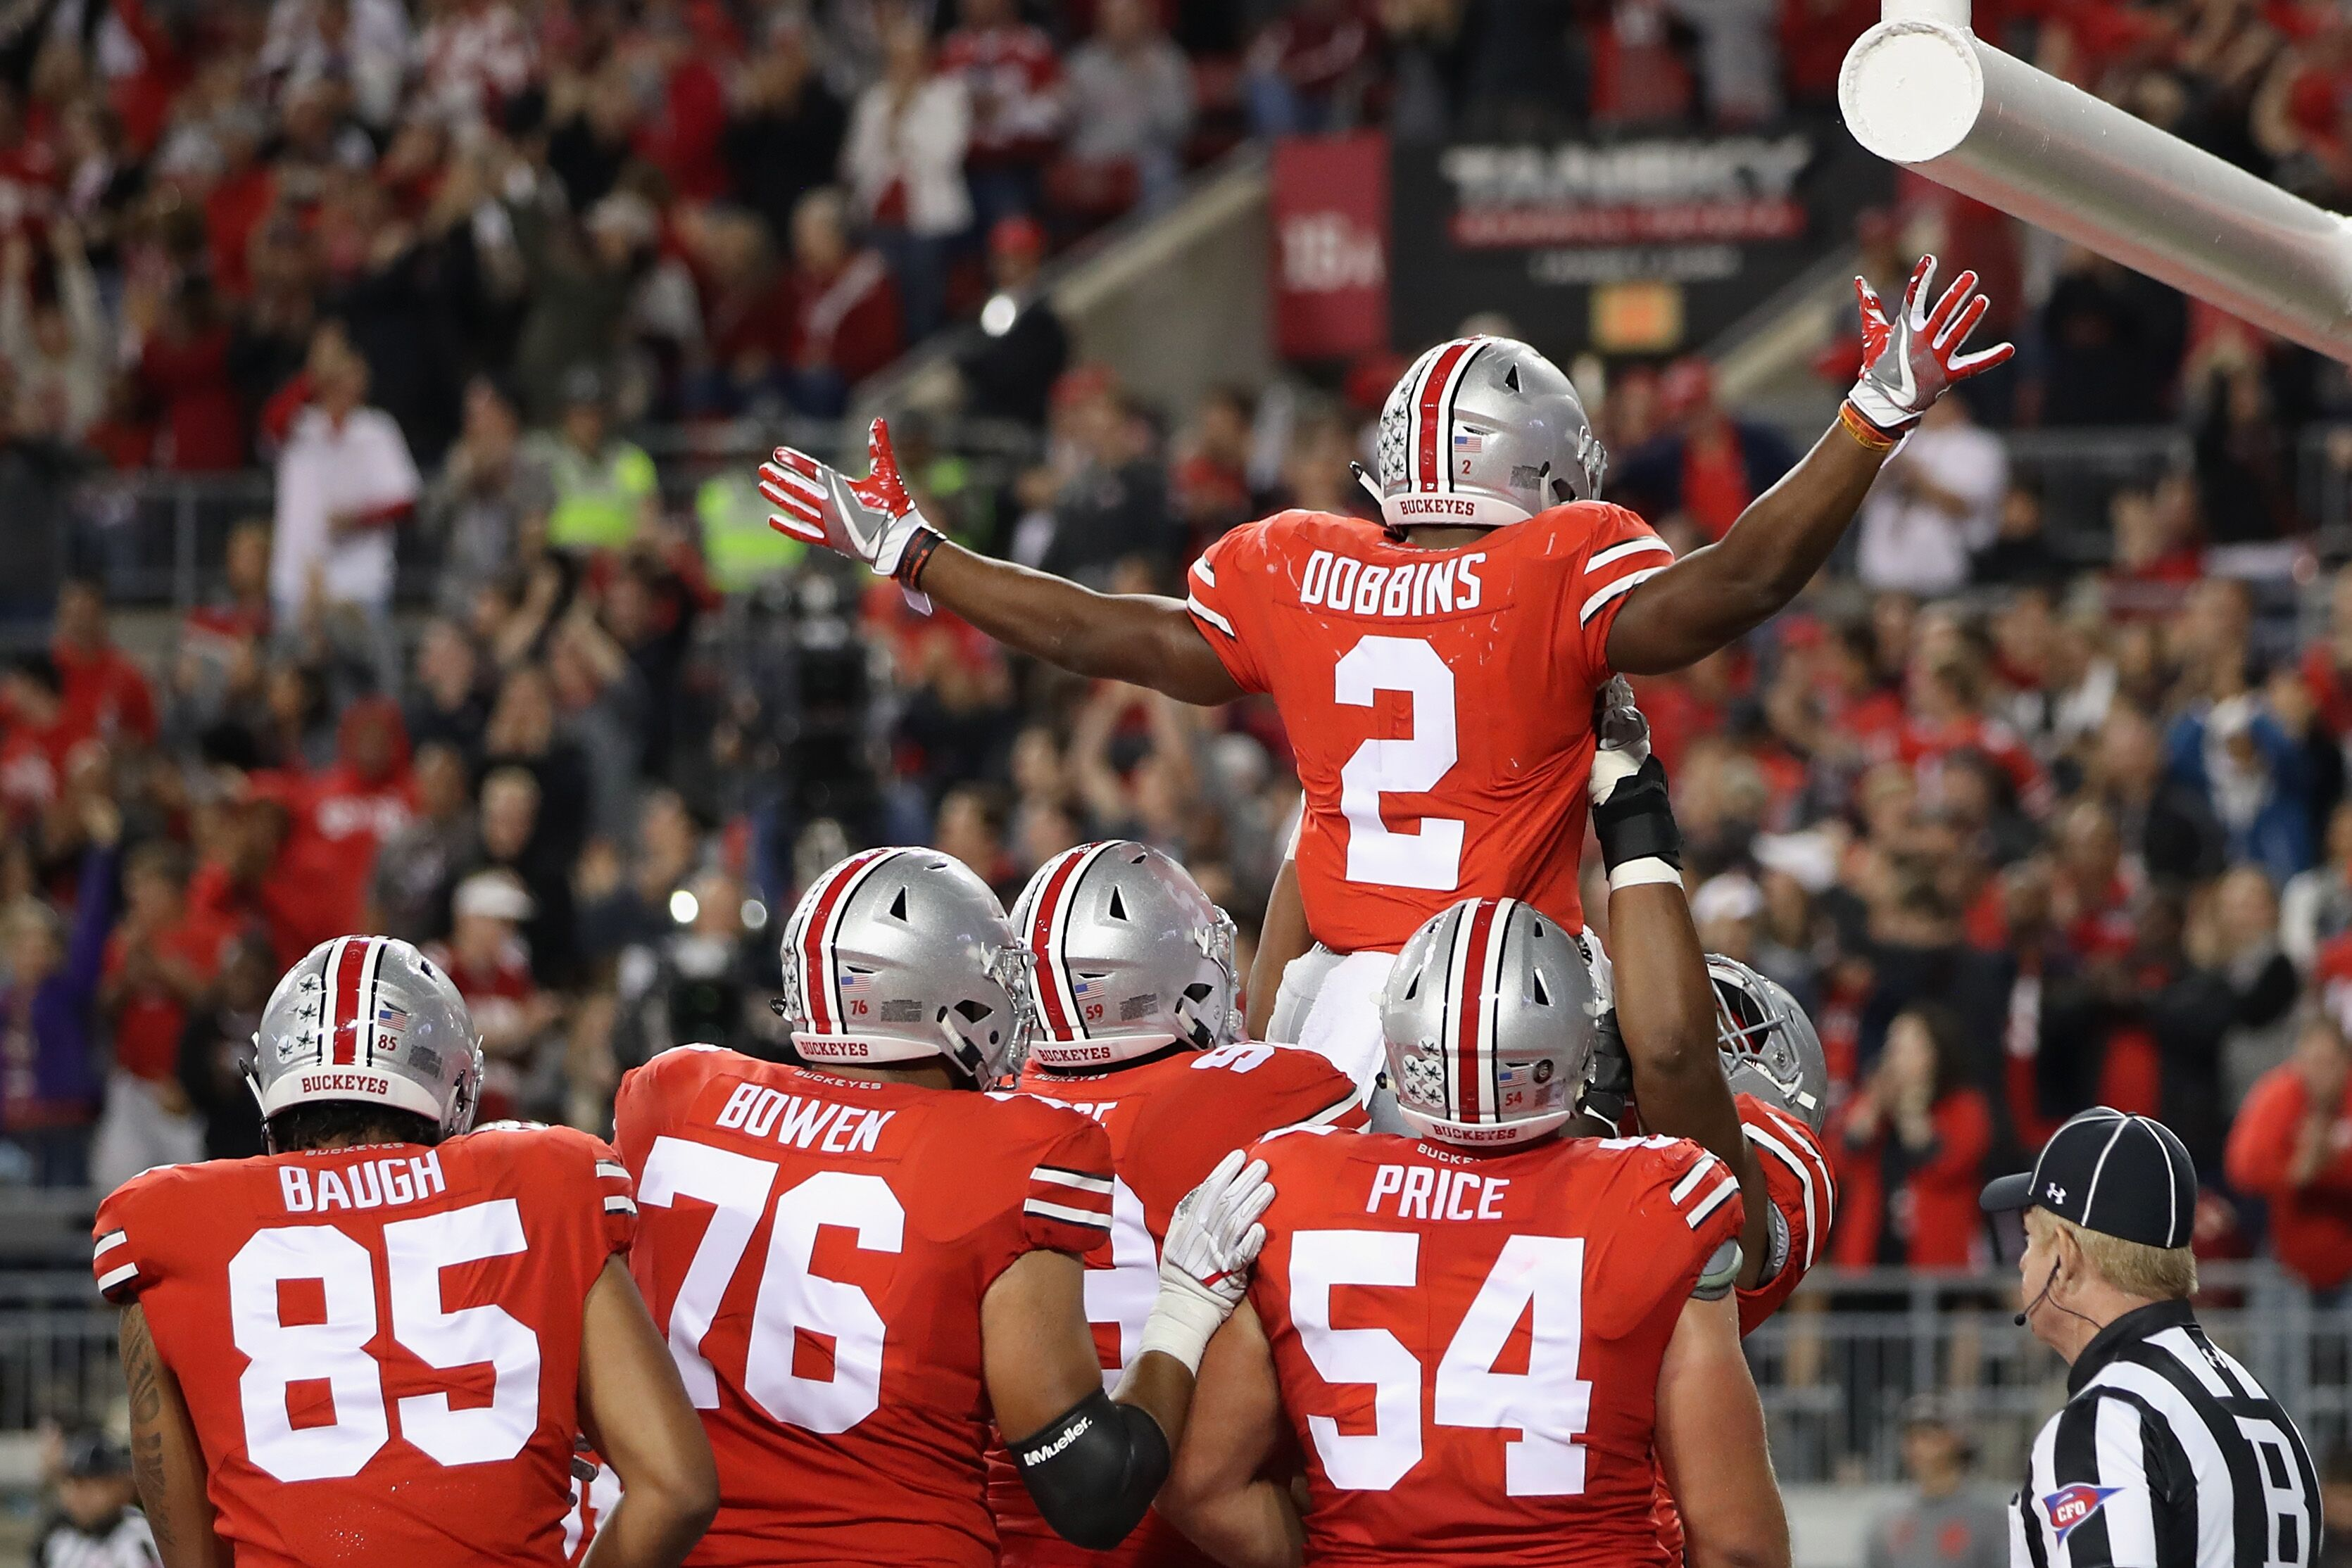 Ohio State Usc Cotton Bowl >> Ohio State offense needs to establish rushing attack in Cotton bowl